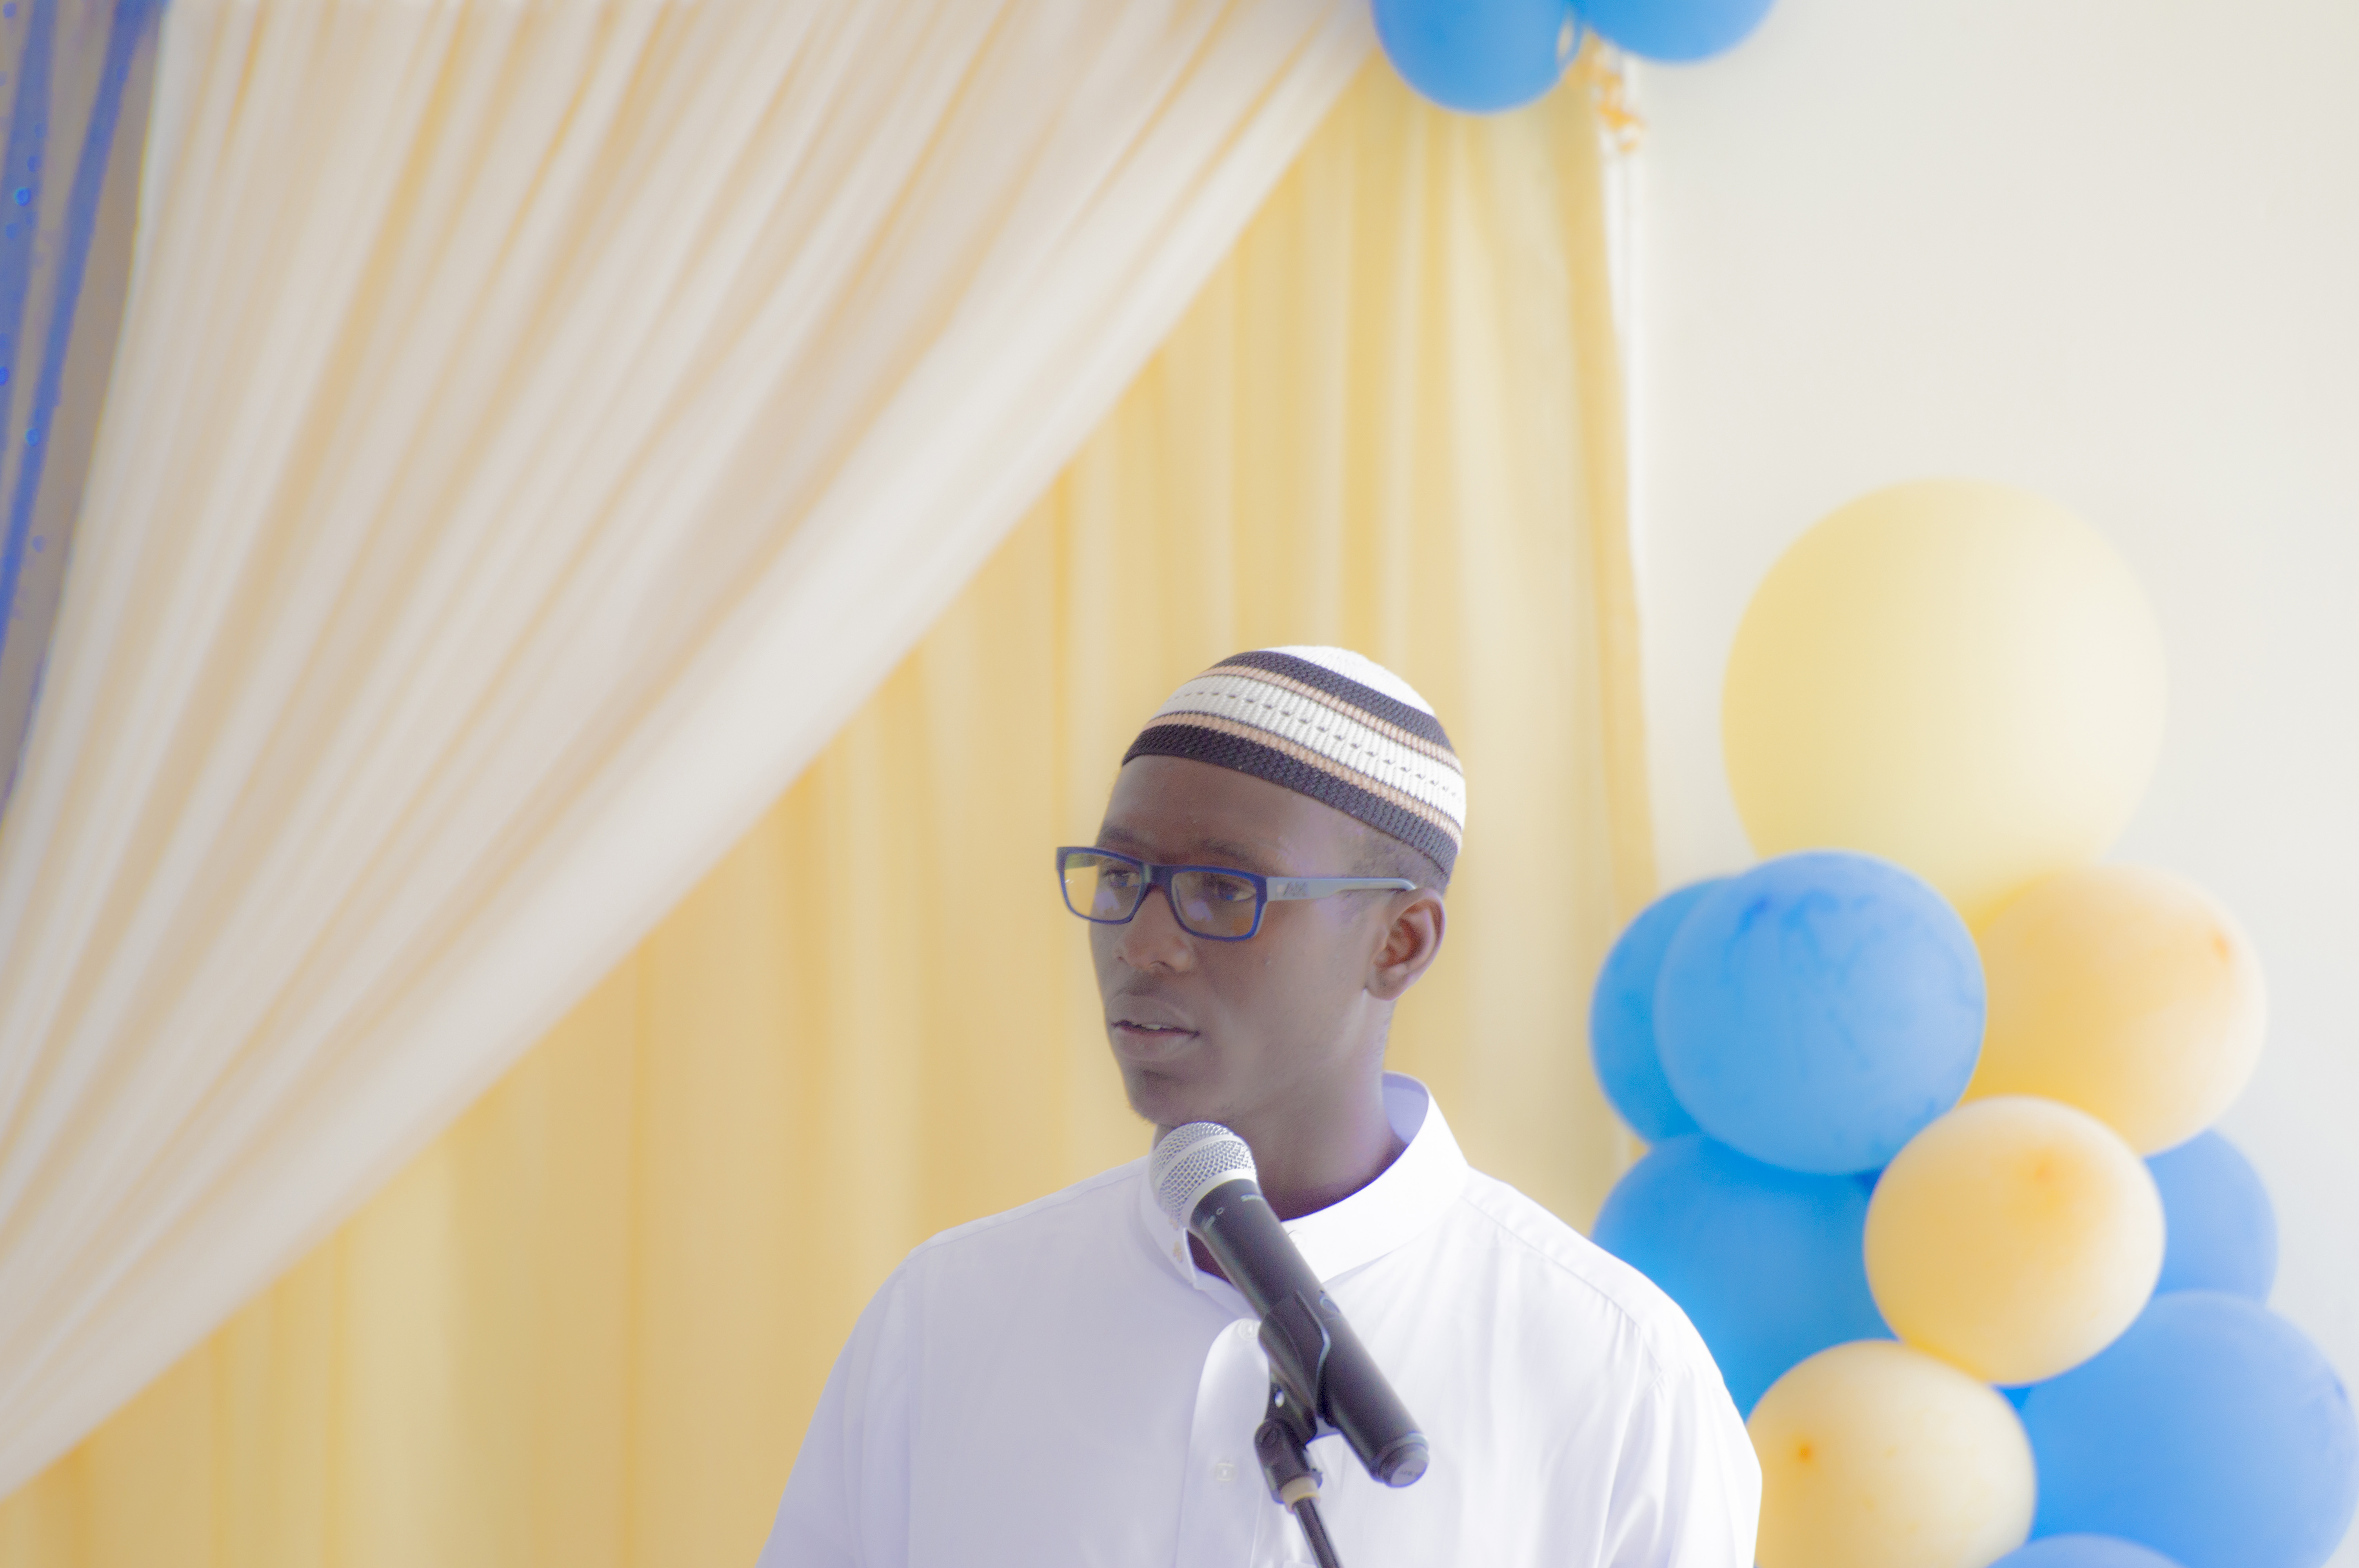 Student Remarks by Br. Yusuf Warrick